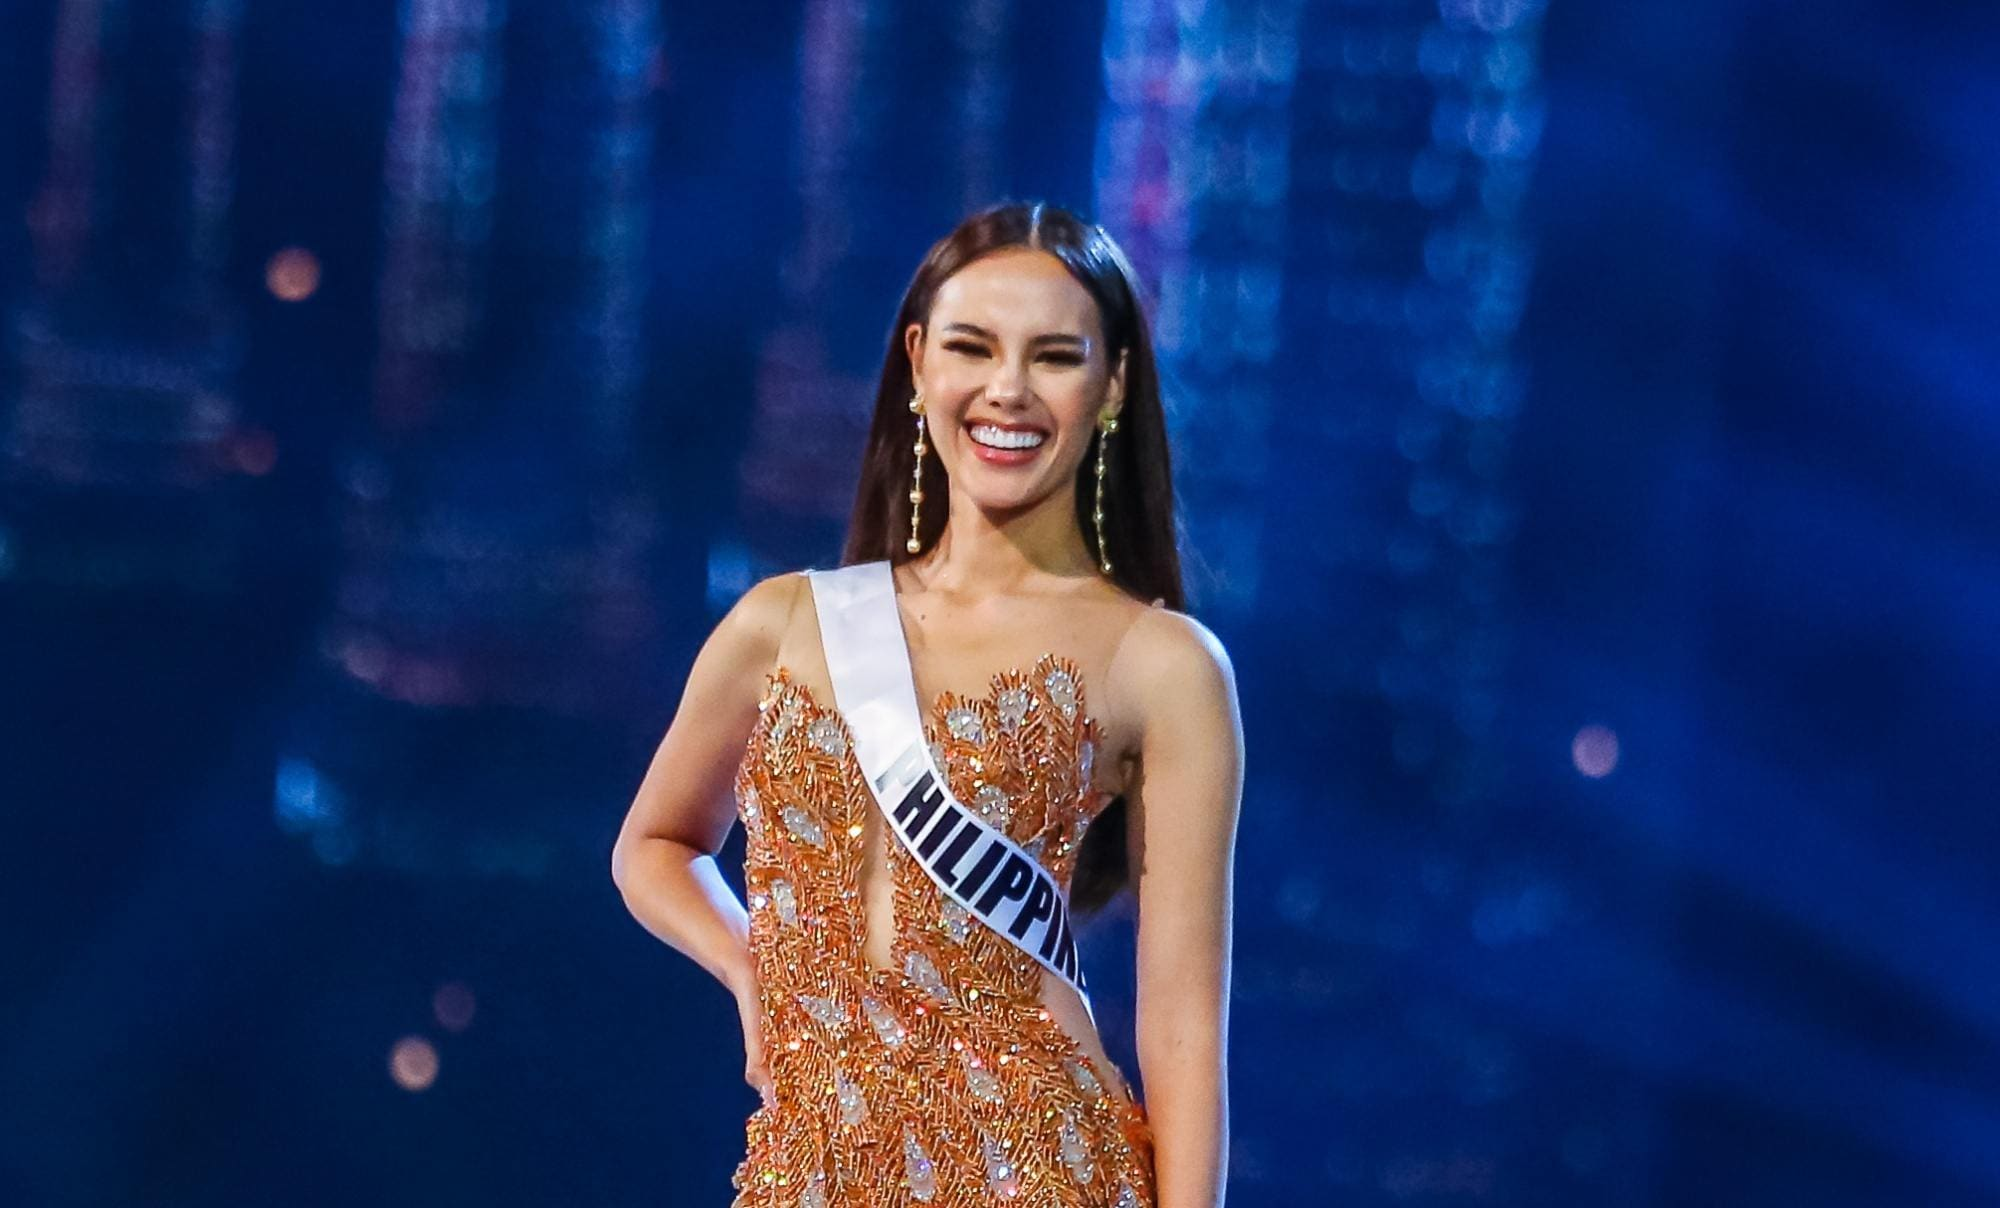 Catriona Gray: A woman with long straight black hair wearing an orange evening gown